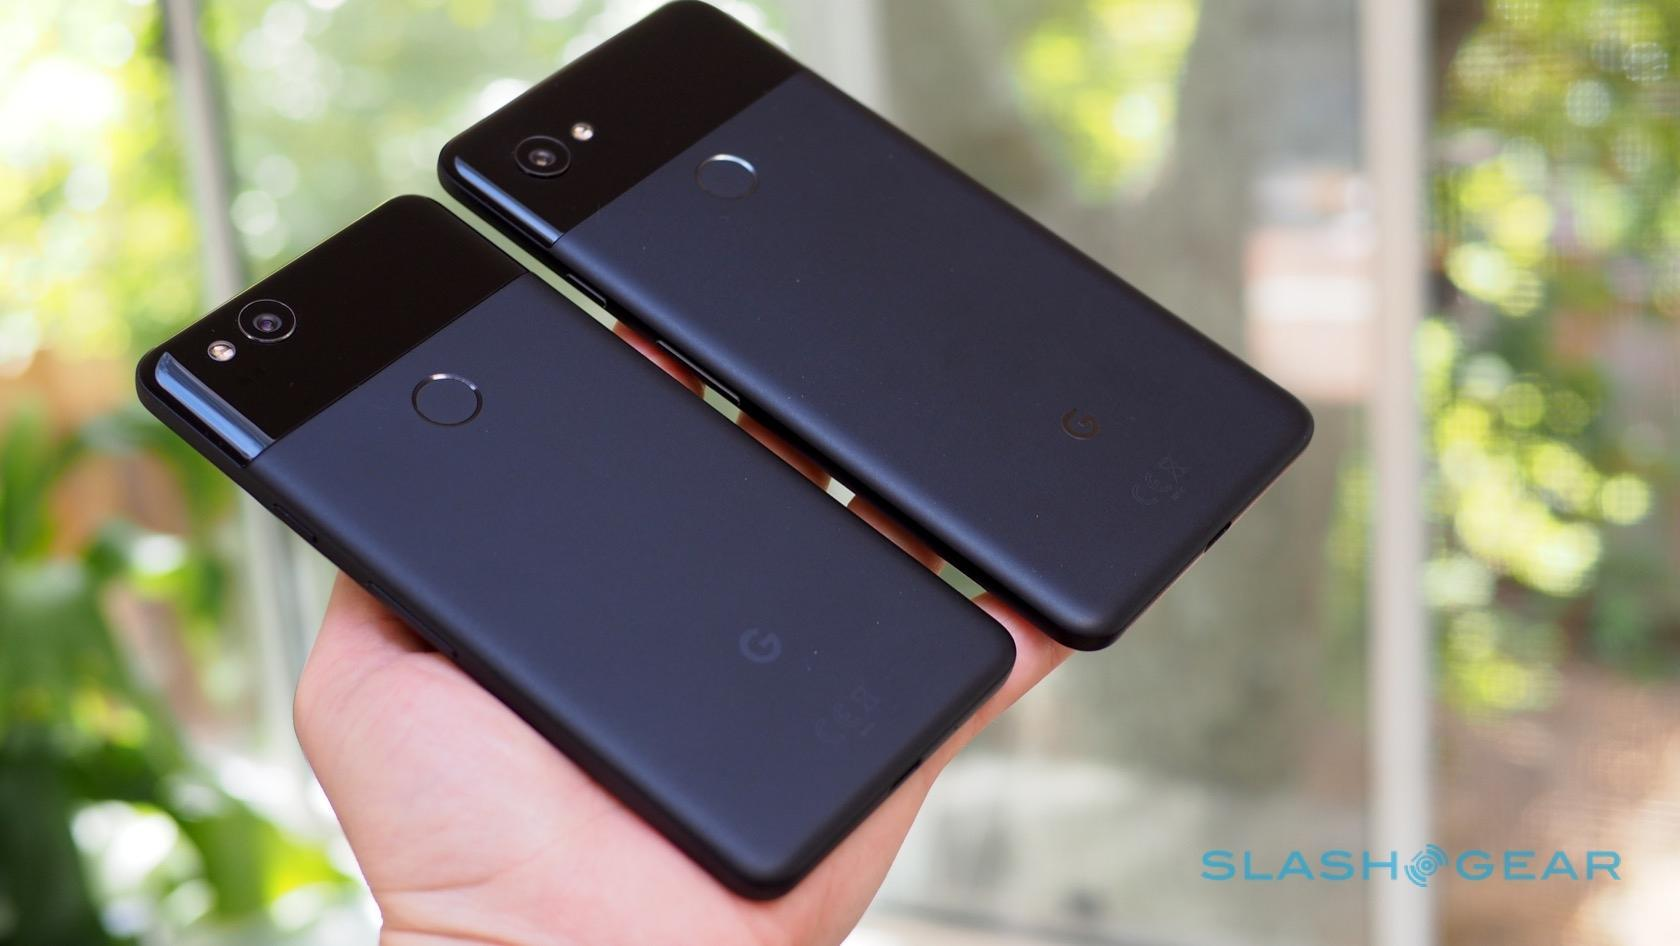 Google Pixel 2 Review: Android camera magic - SlashGear